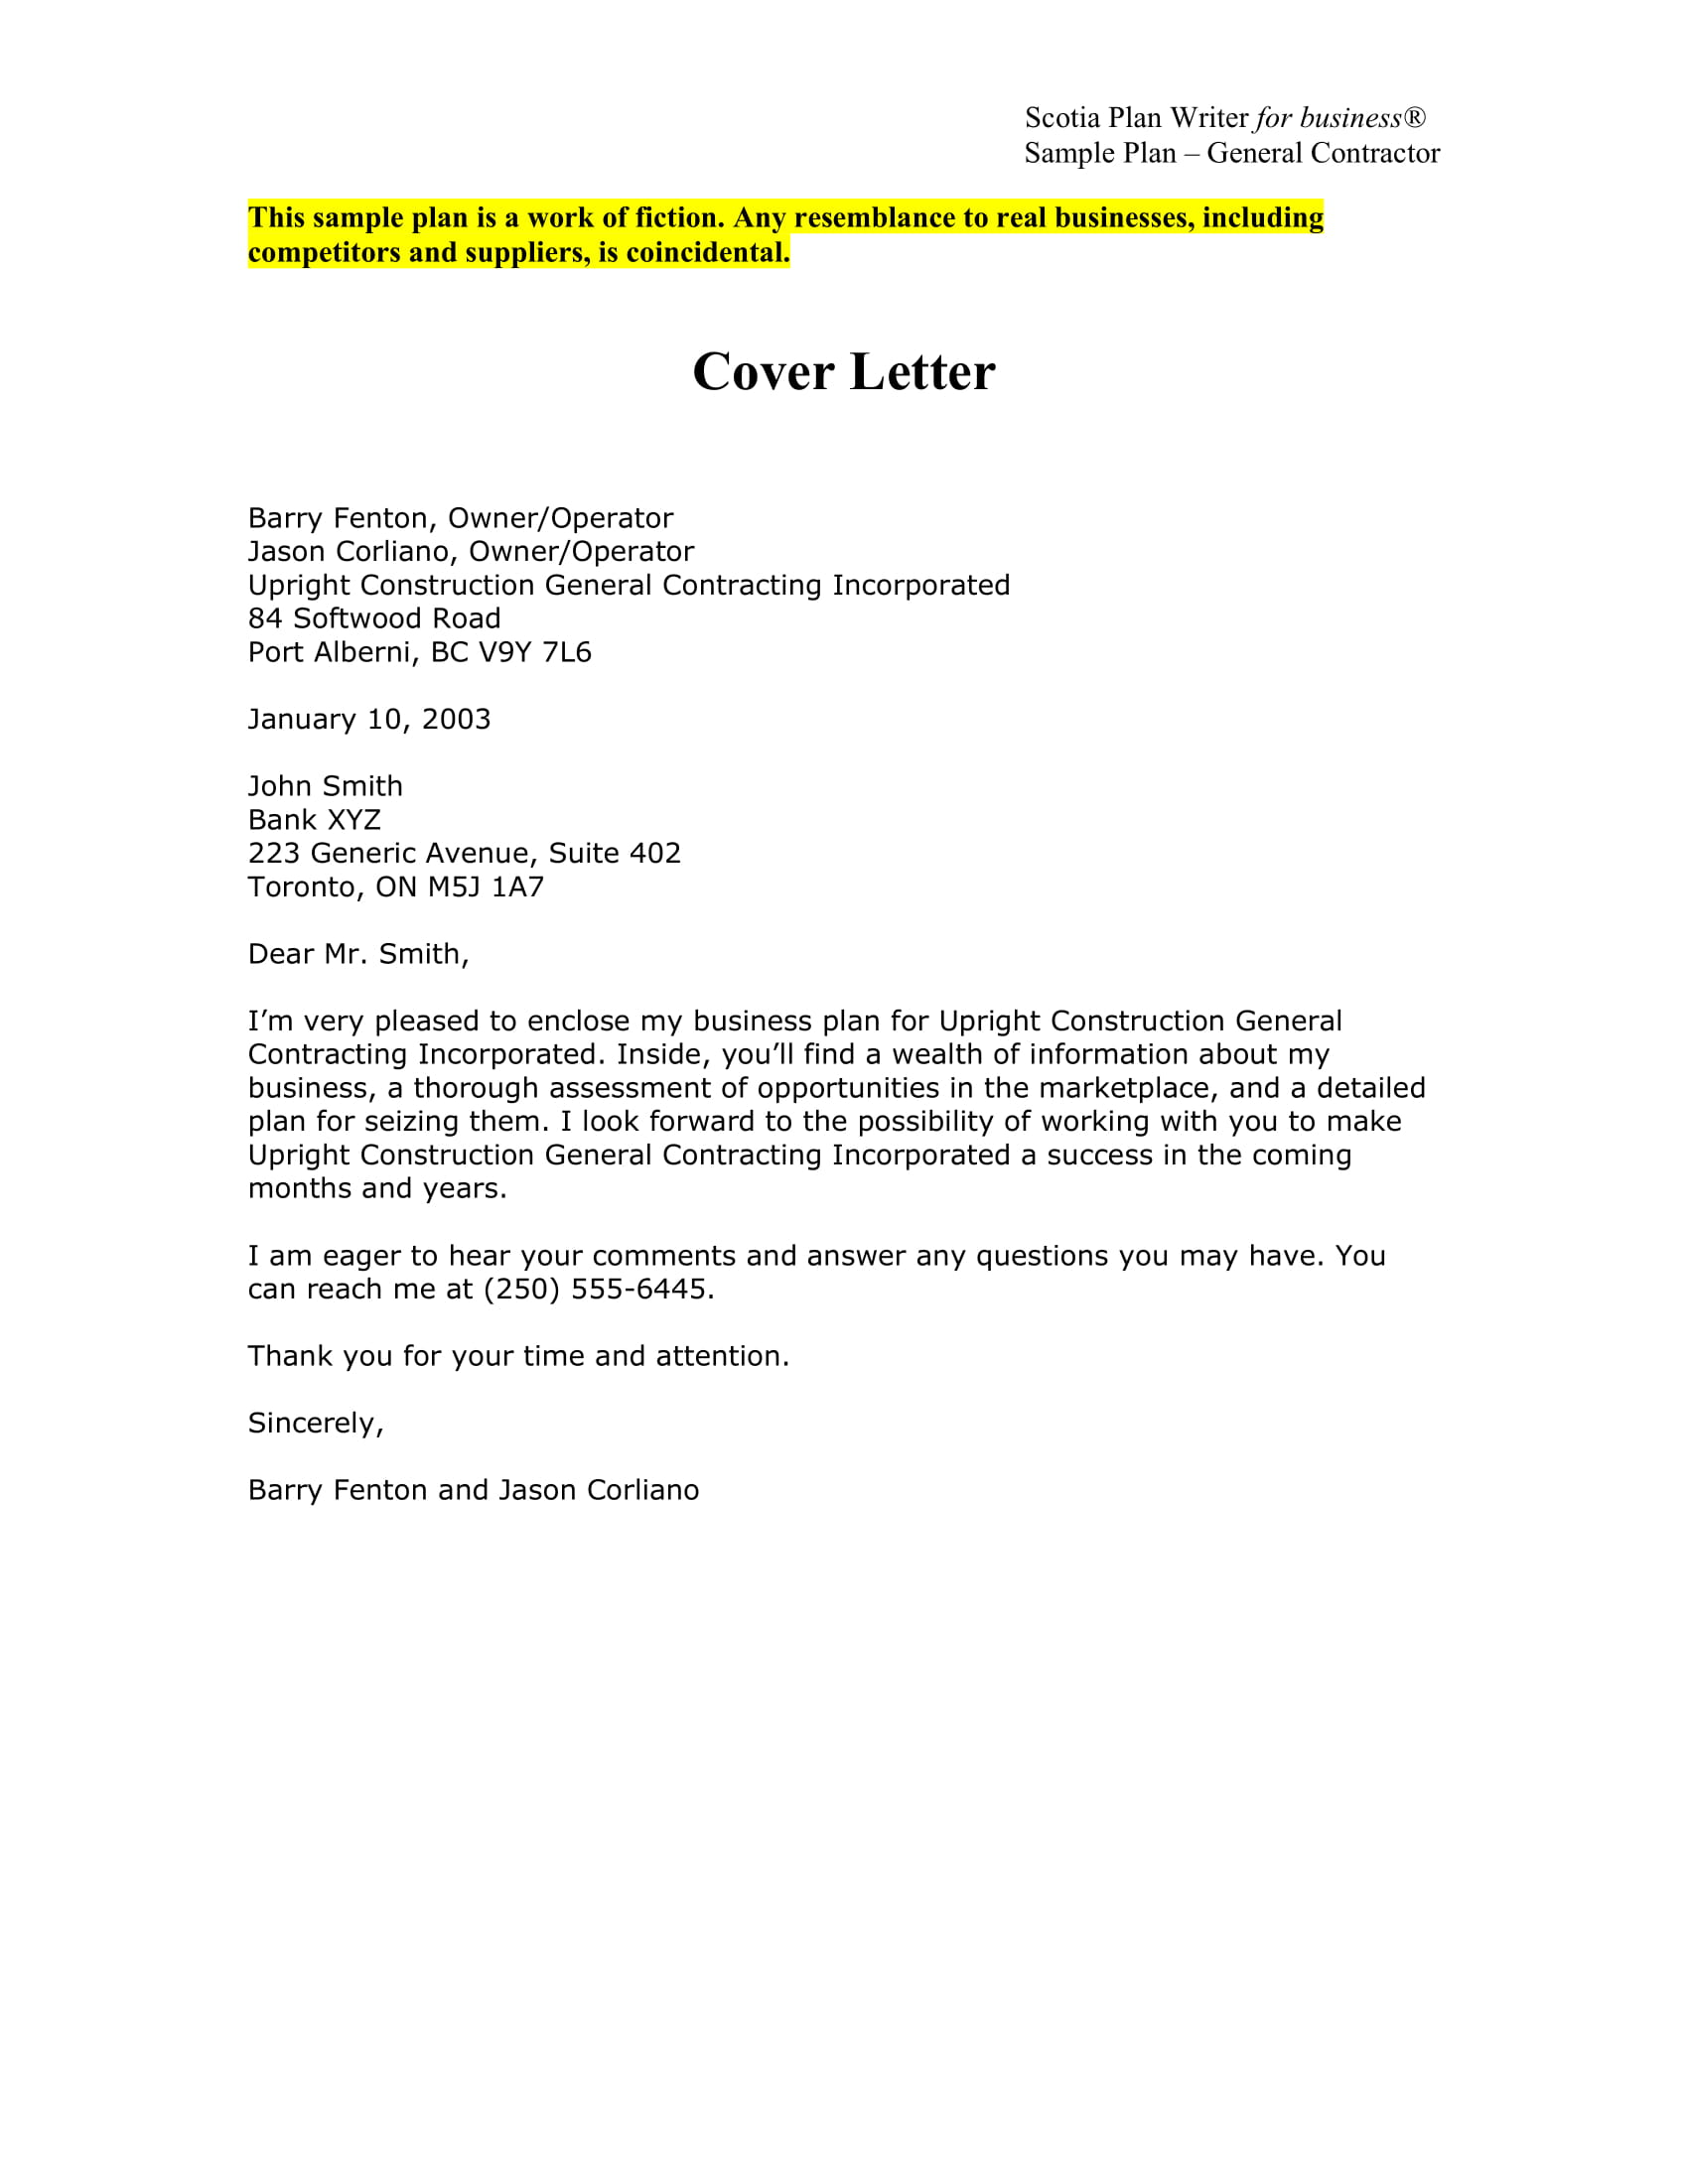 bid cover letter samples - Topa.mastersathletics.co